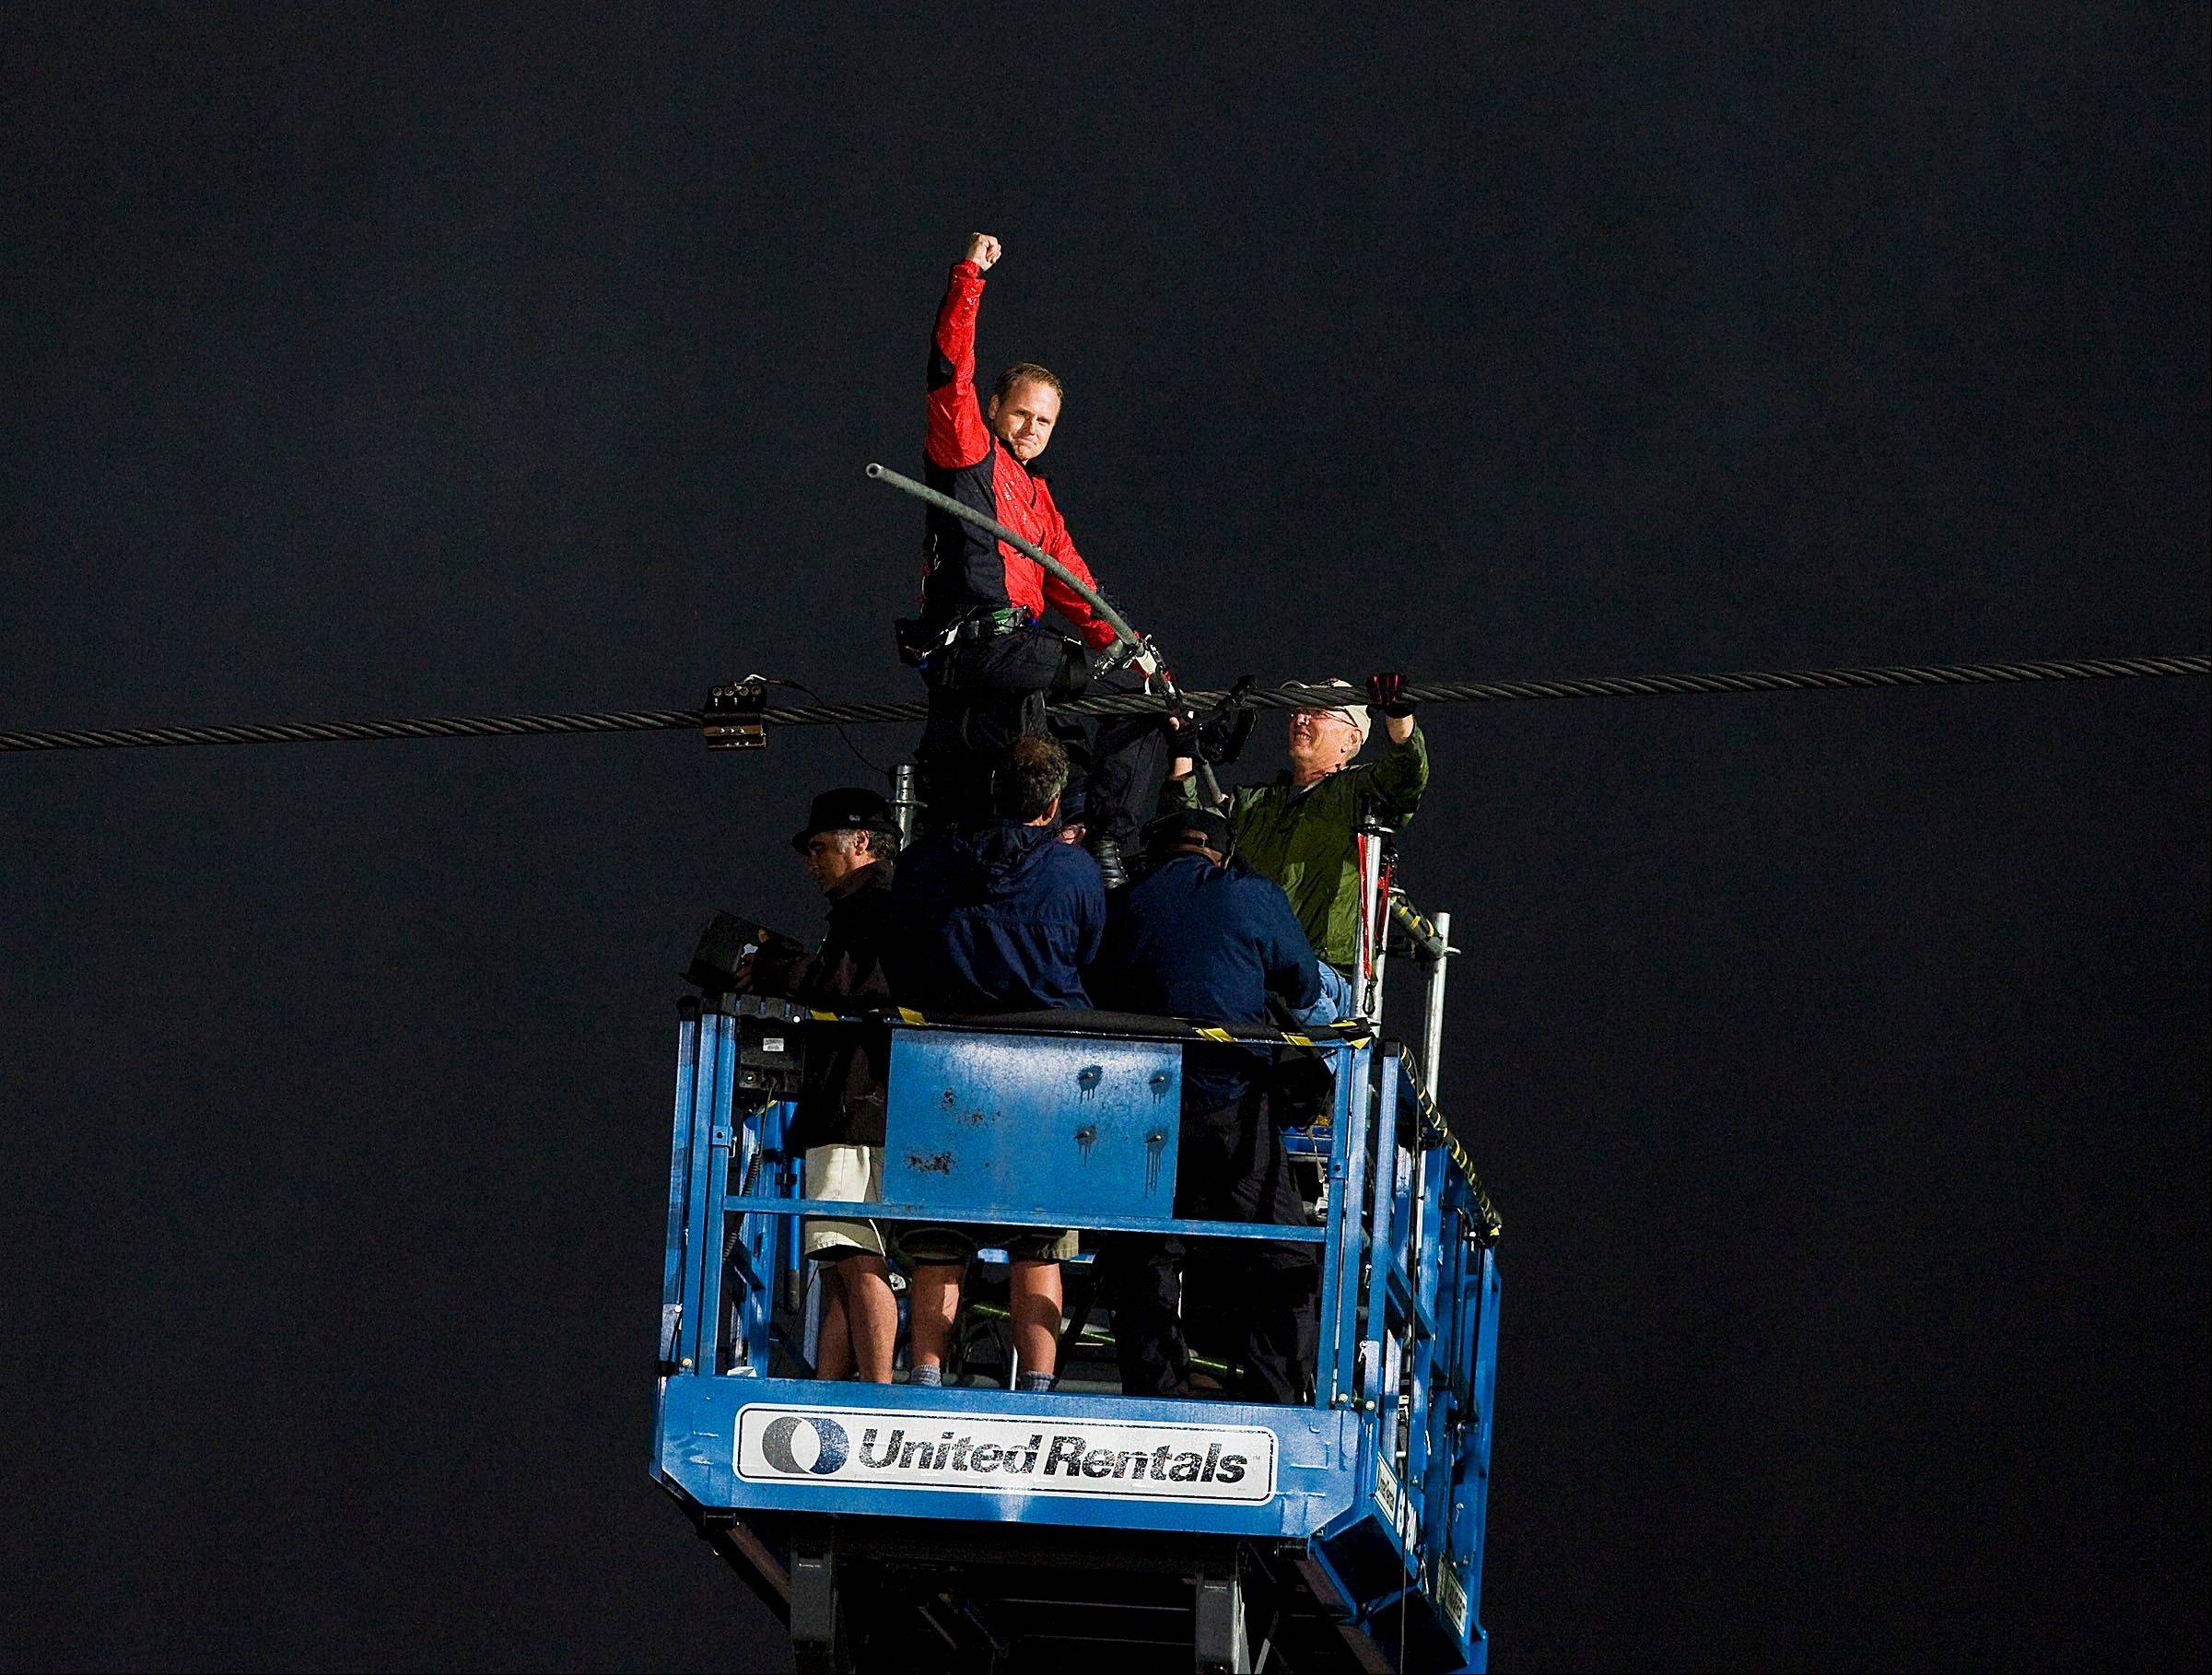 Nik Wallenda pumps his fist as he completes his 1,800 feet-long tightrope walk over the brink of the Niagara Falls in Niagara Falls, Ont., on Friday, June 15, 2012. Wallenda battled brisk winds and thick mist Friday to make history, becoming the first person to walk across Niagara Falls on a tightrope.